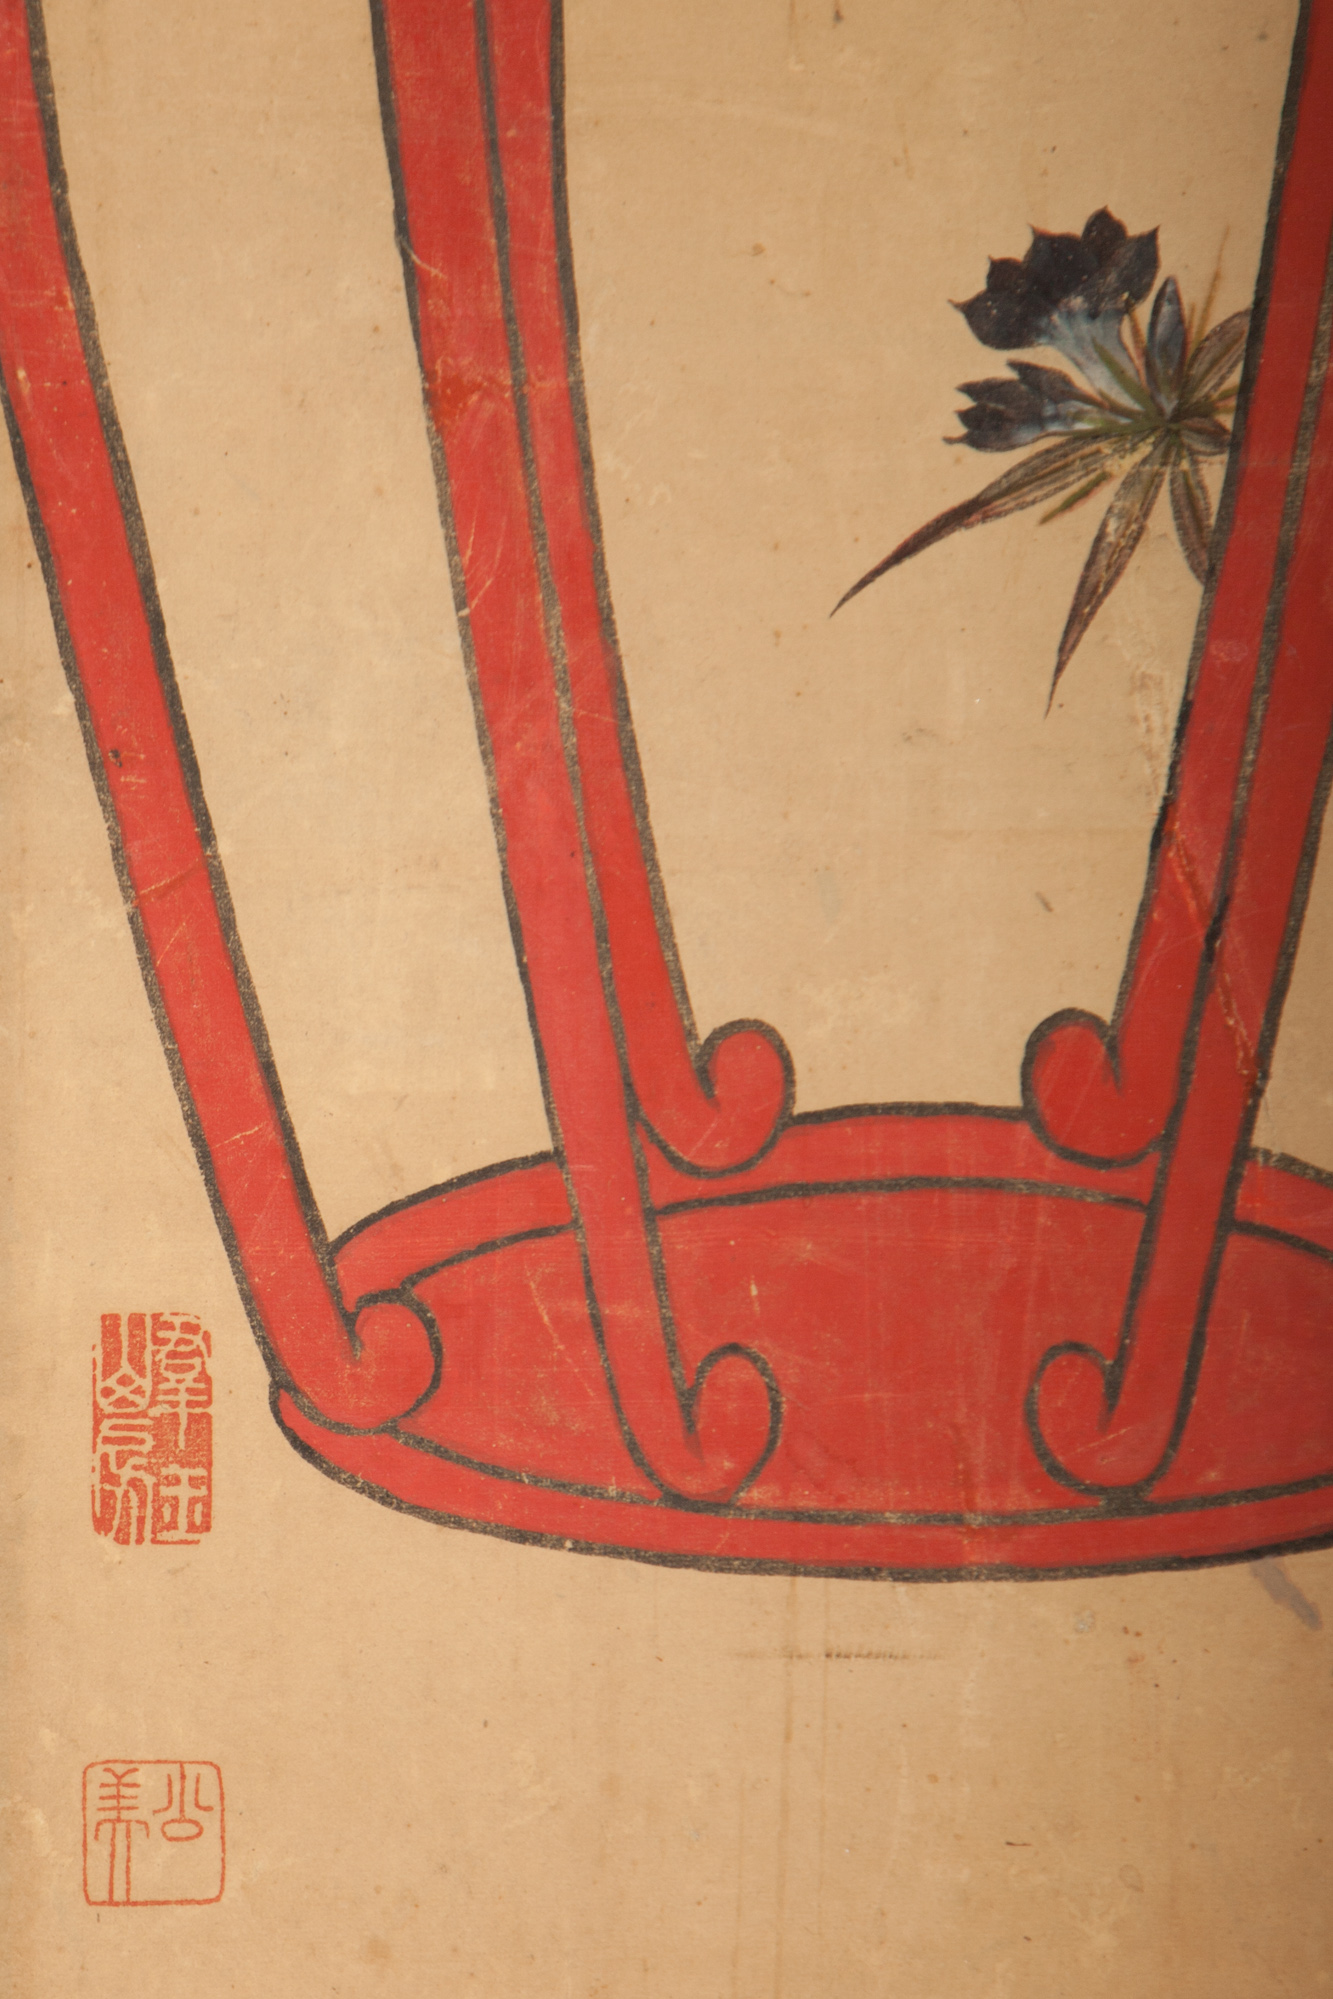 Japanese Single Panel Screen: Ikebana (Flower Arranging Basket)